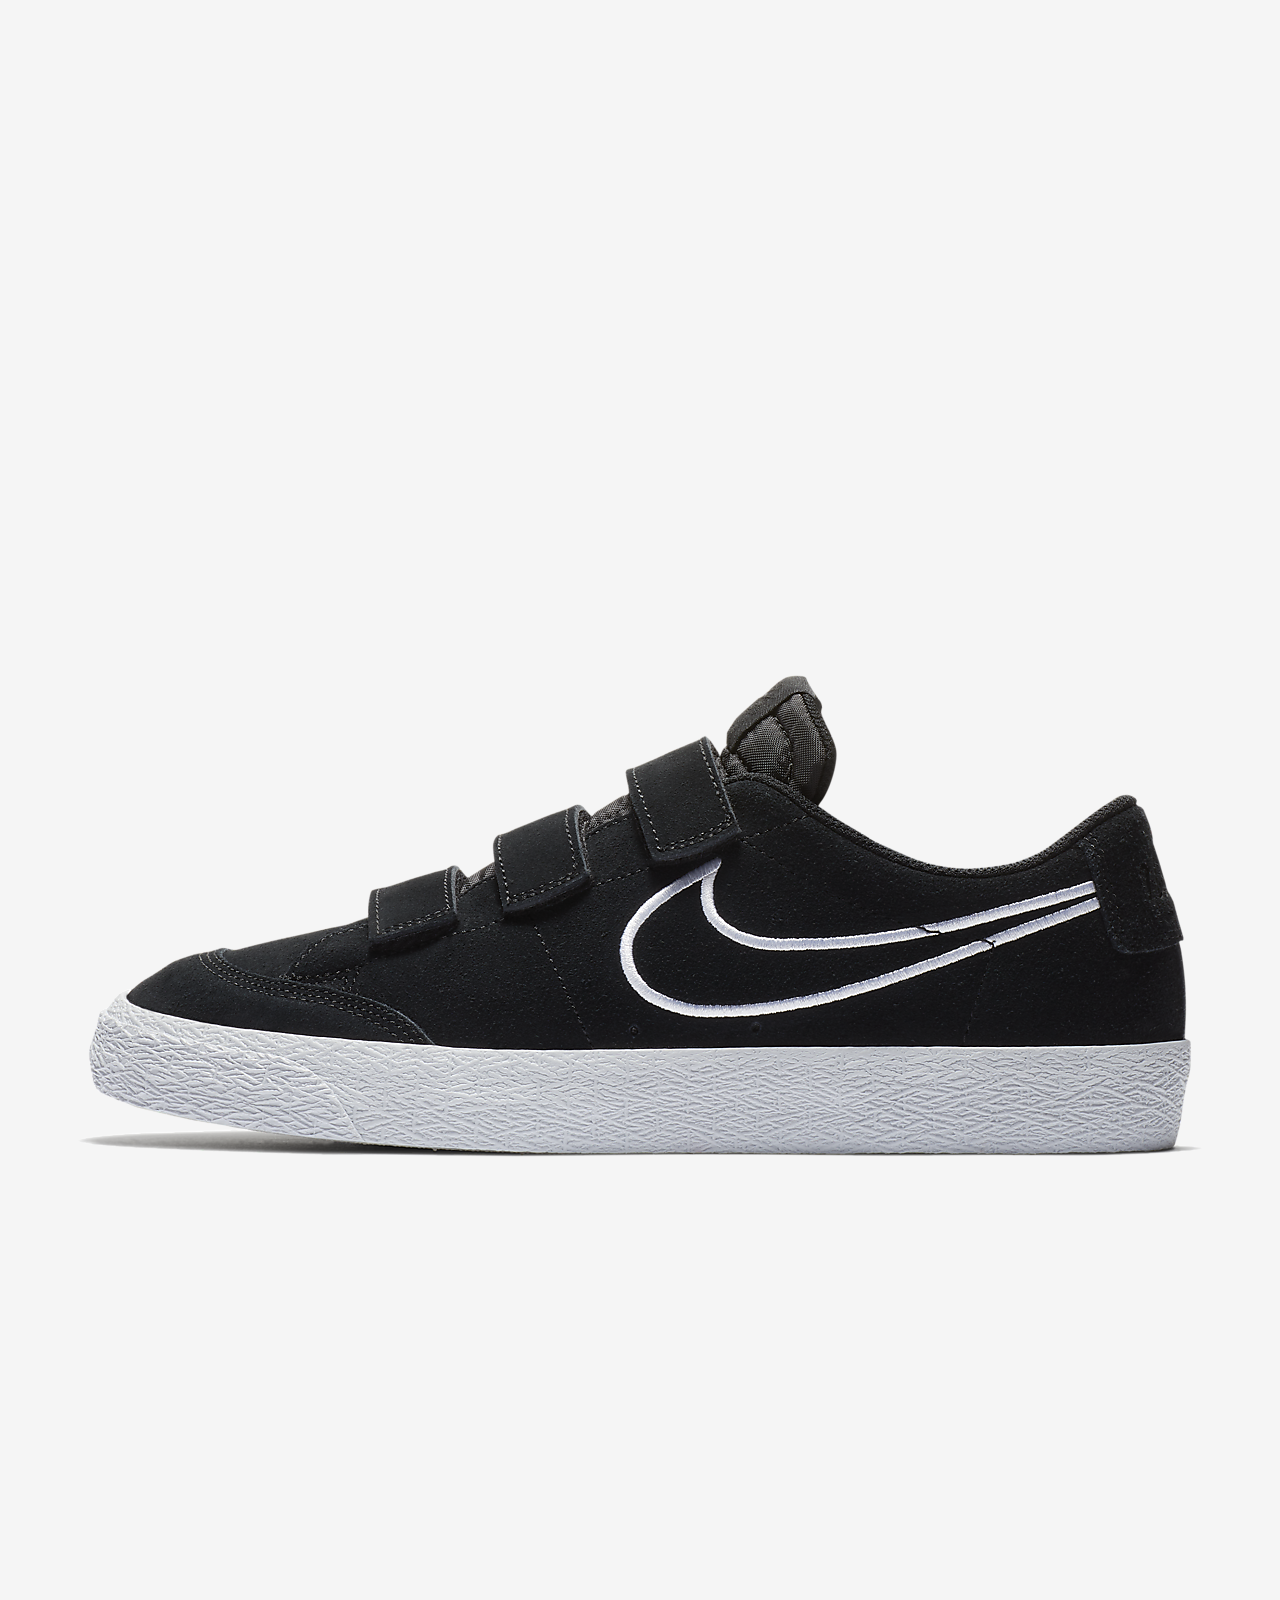 Nike SB Zoom Blazer AC XT Ridgerock Fossil Men Skate Boarding Shoes AH3434200